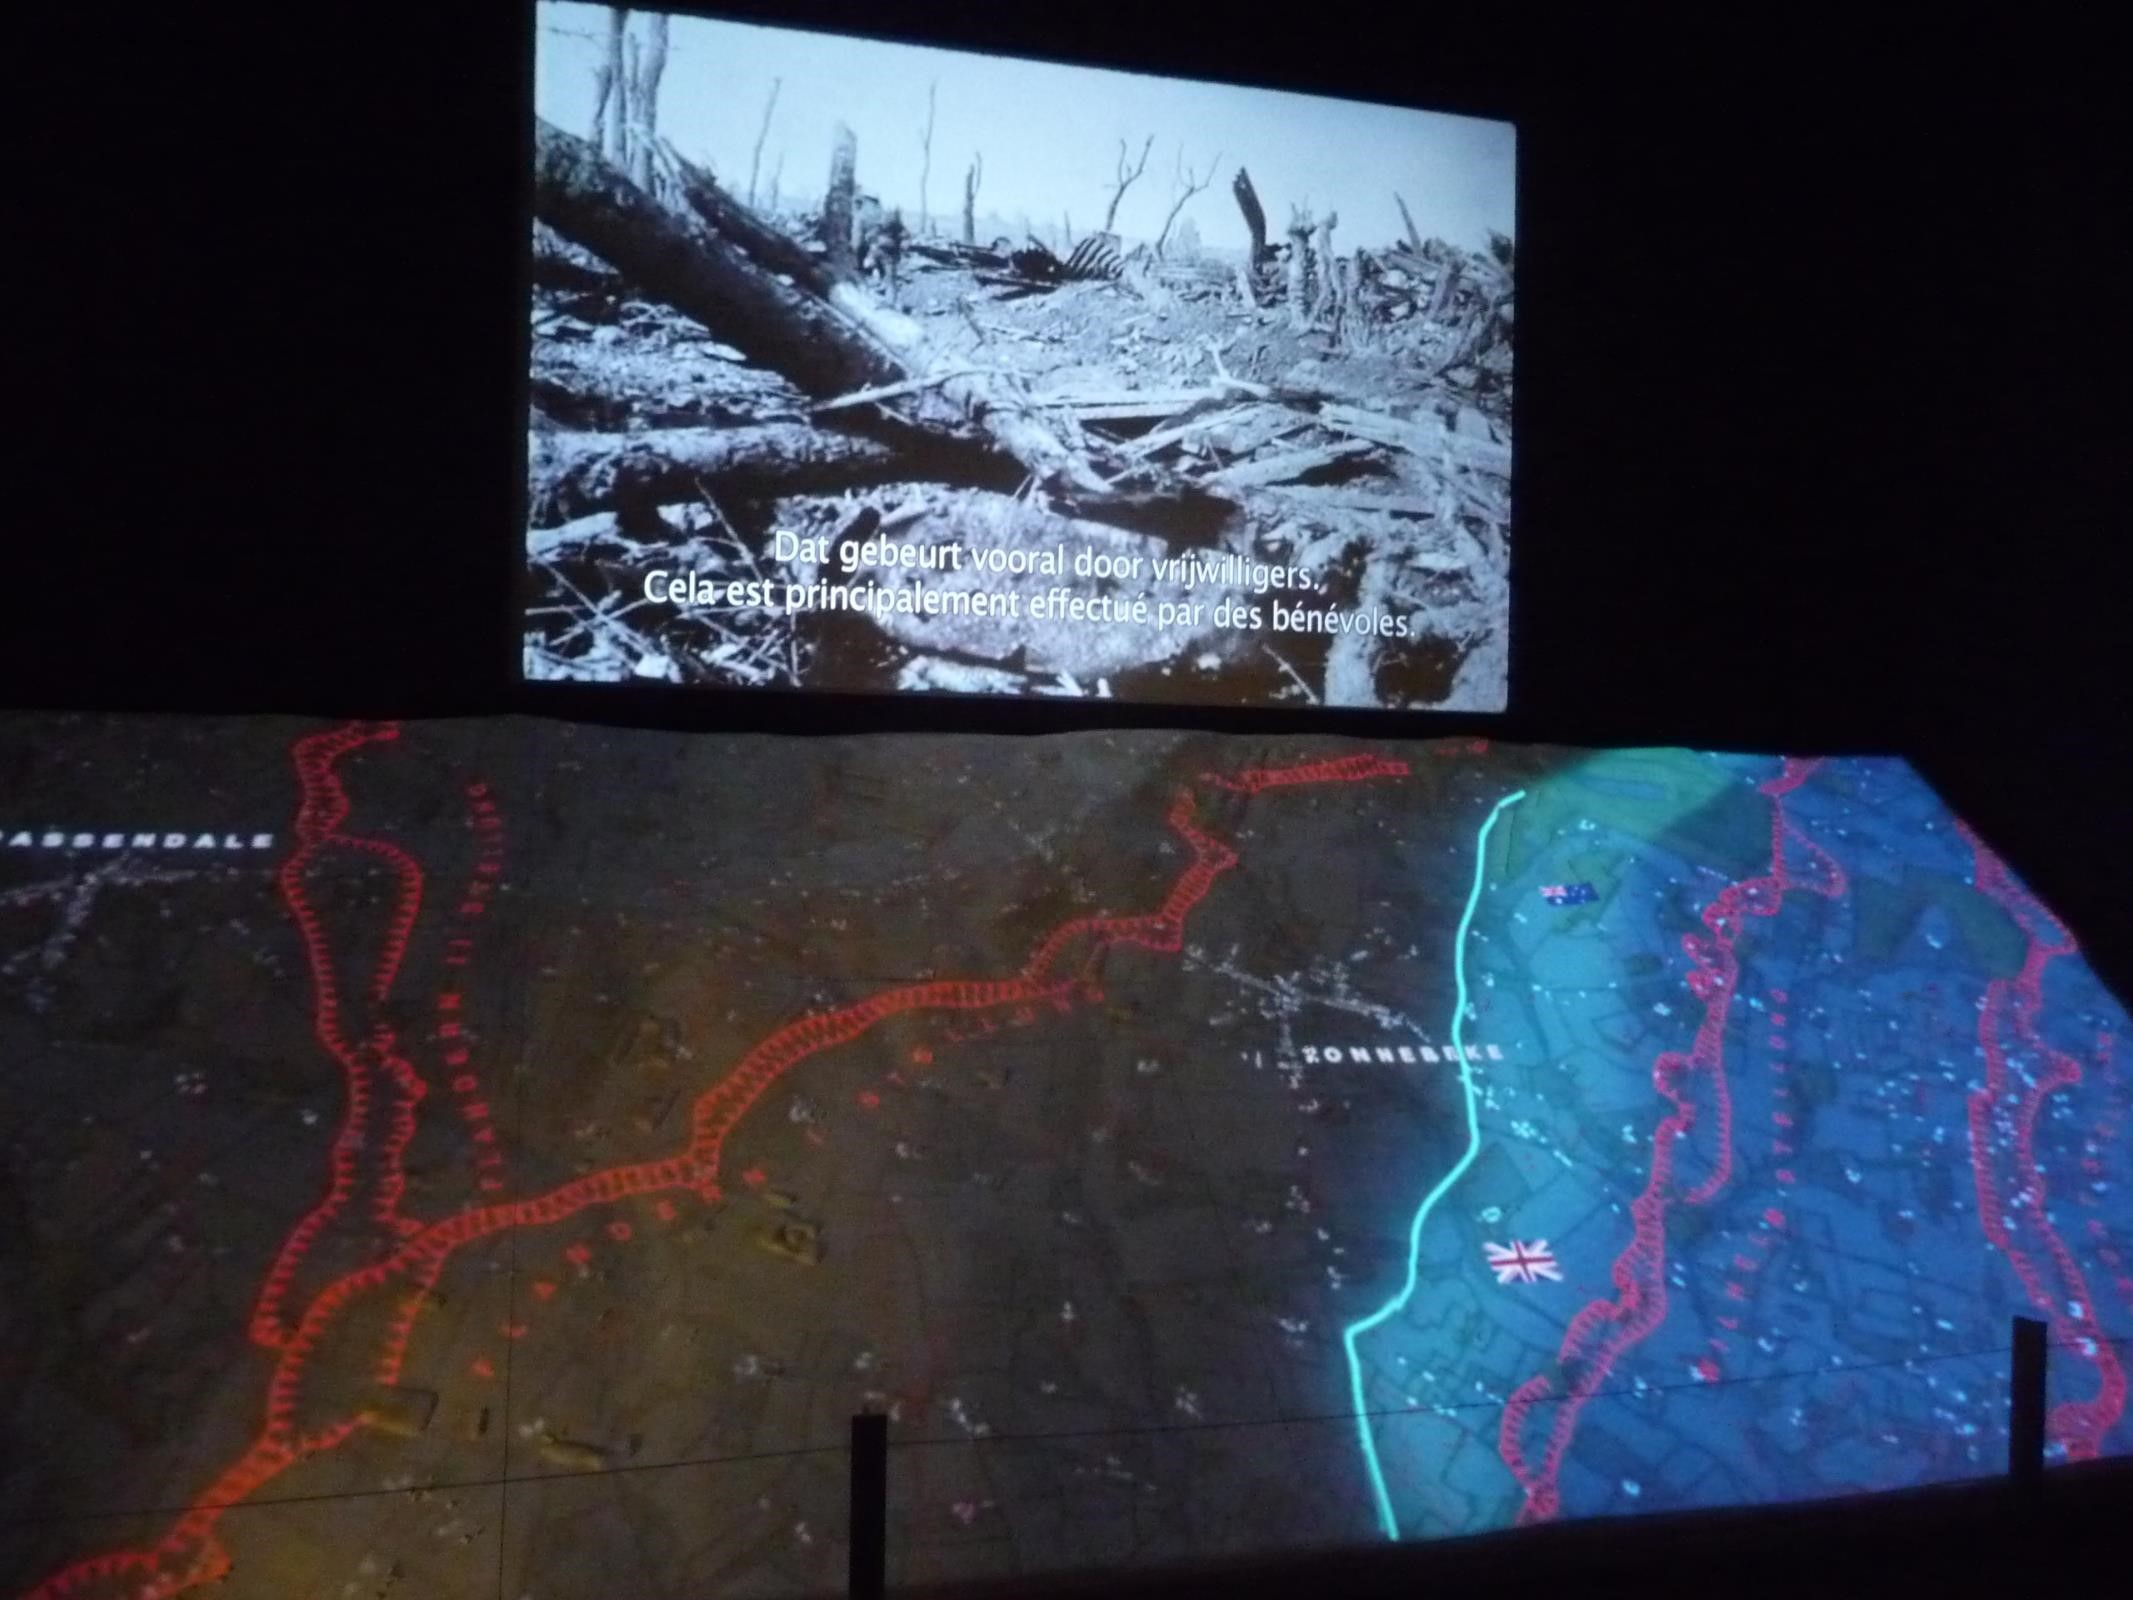 Video explaining Battle of Passchendaele